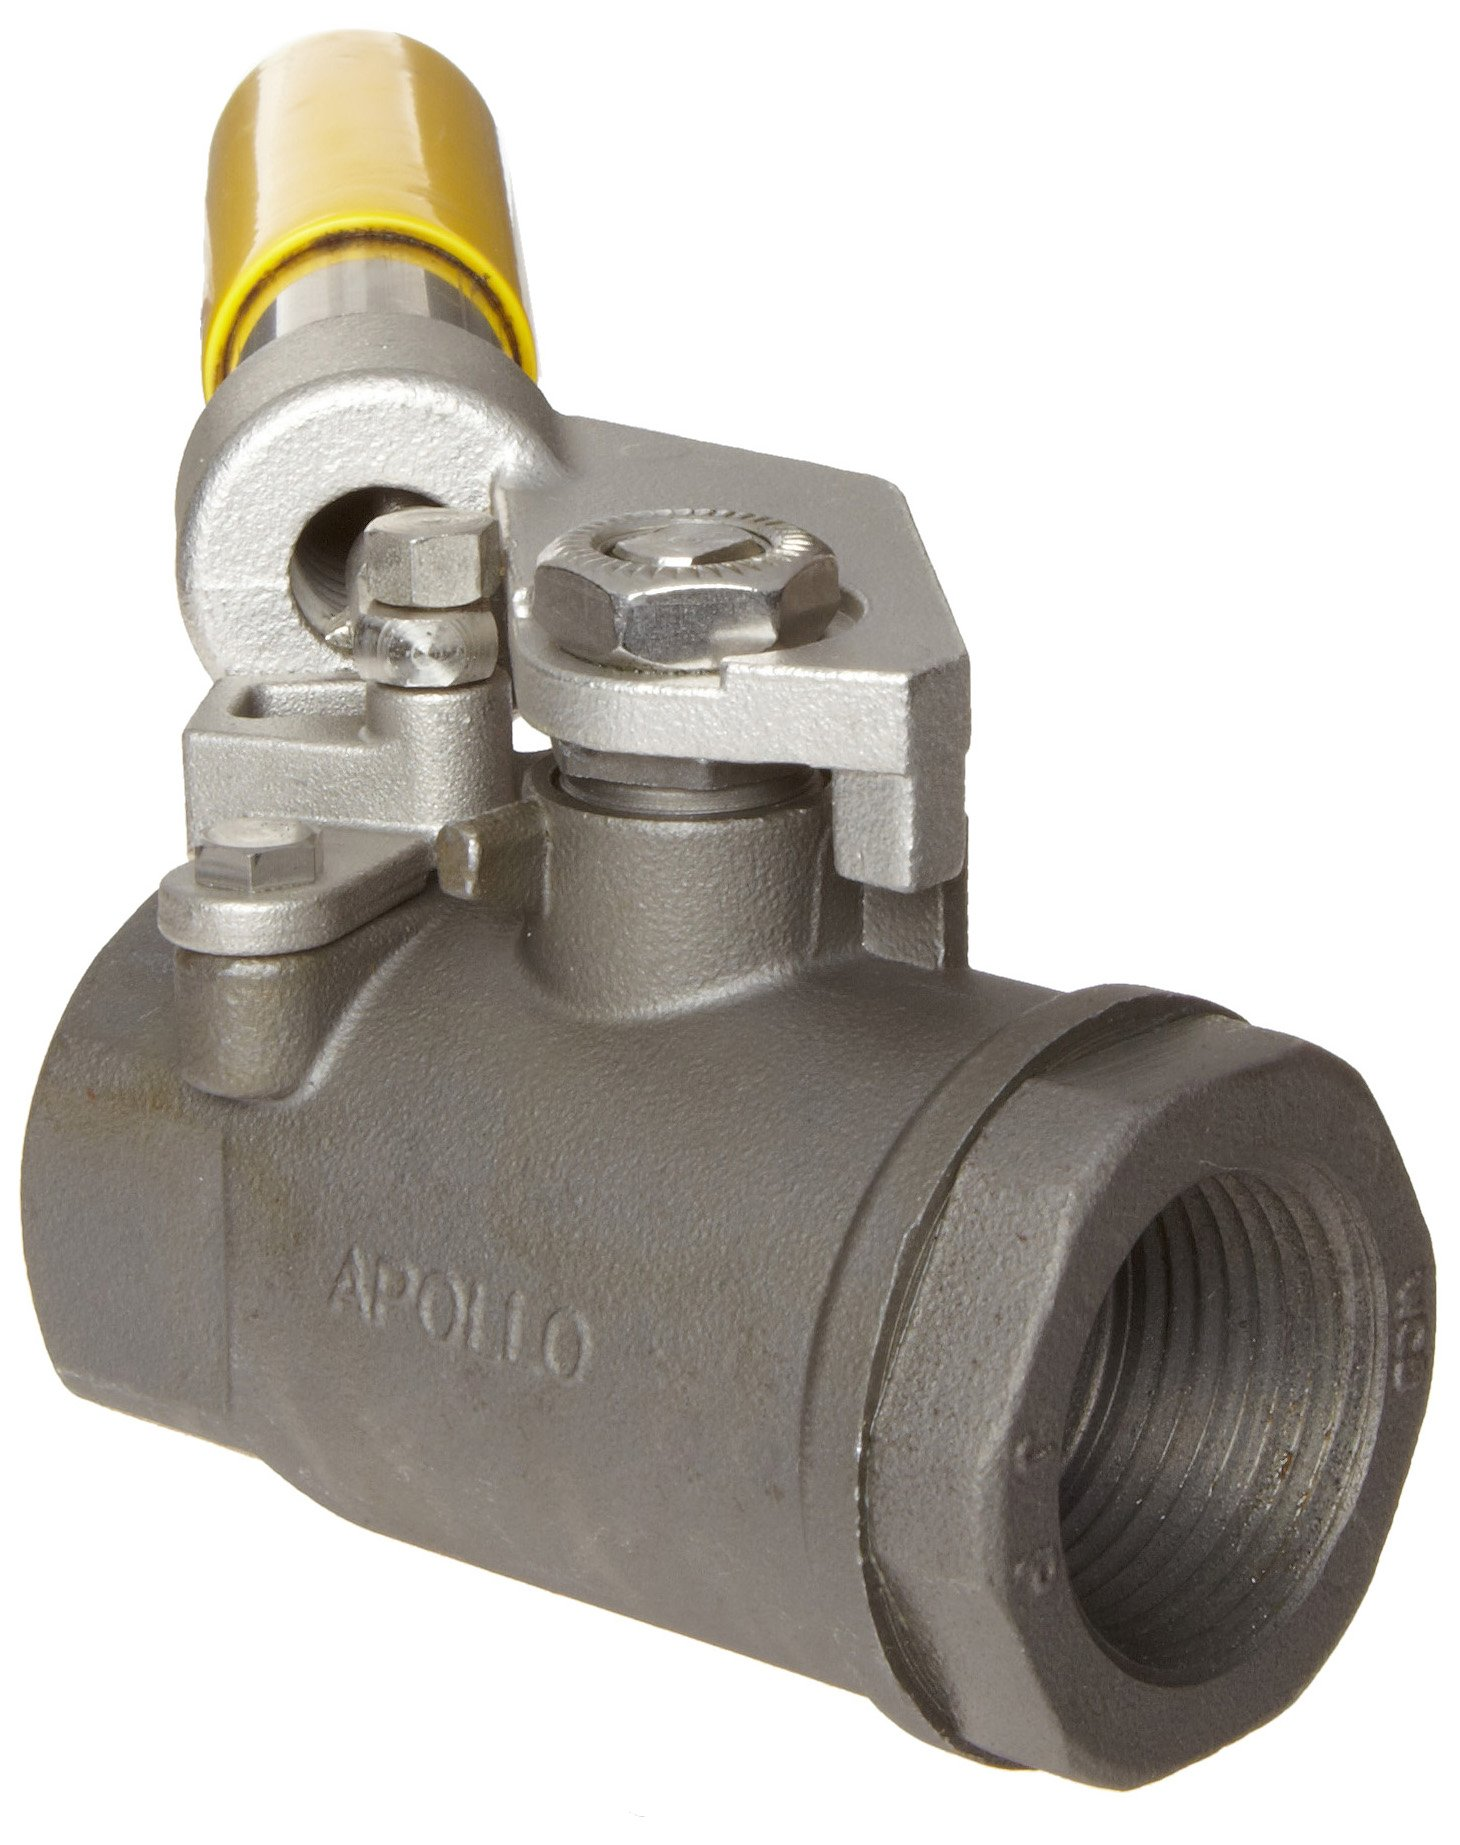 Apollo 89-500 Series Carbon Steel Ball Valve, Two Piece, Inline, Spring-Close Lever, 1'' NPT Female